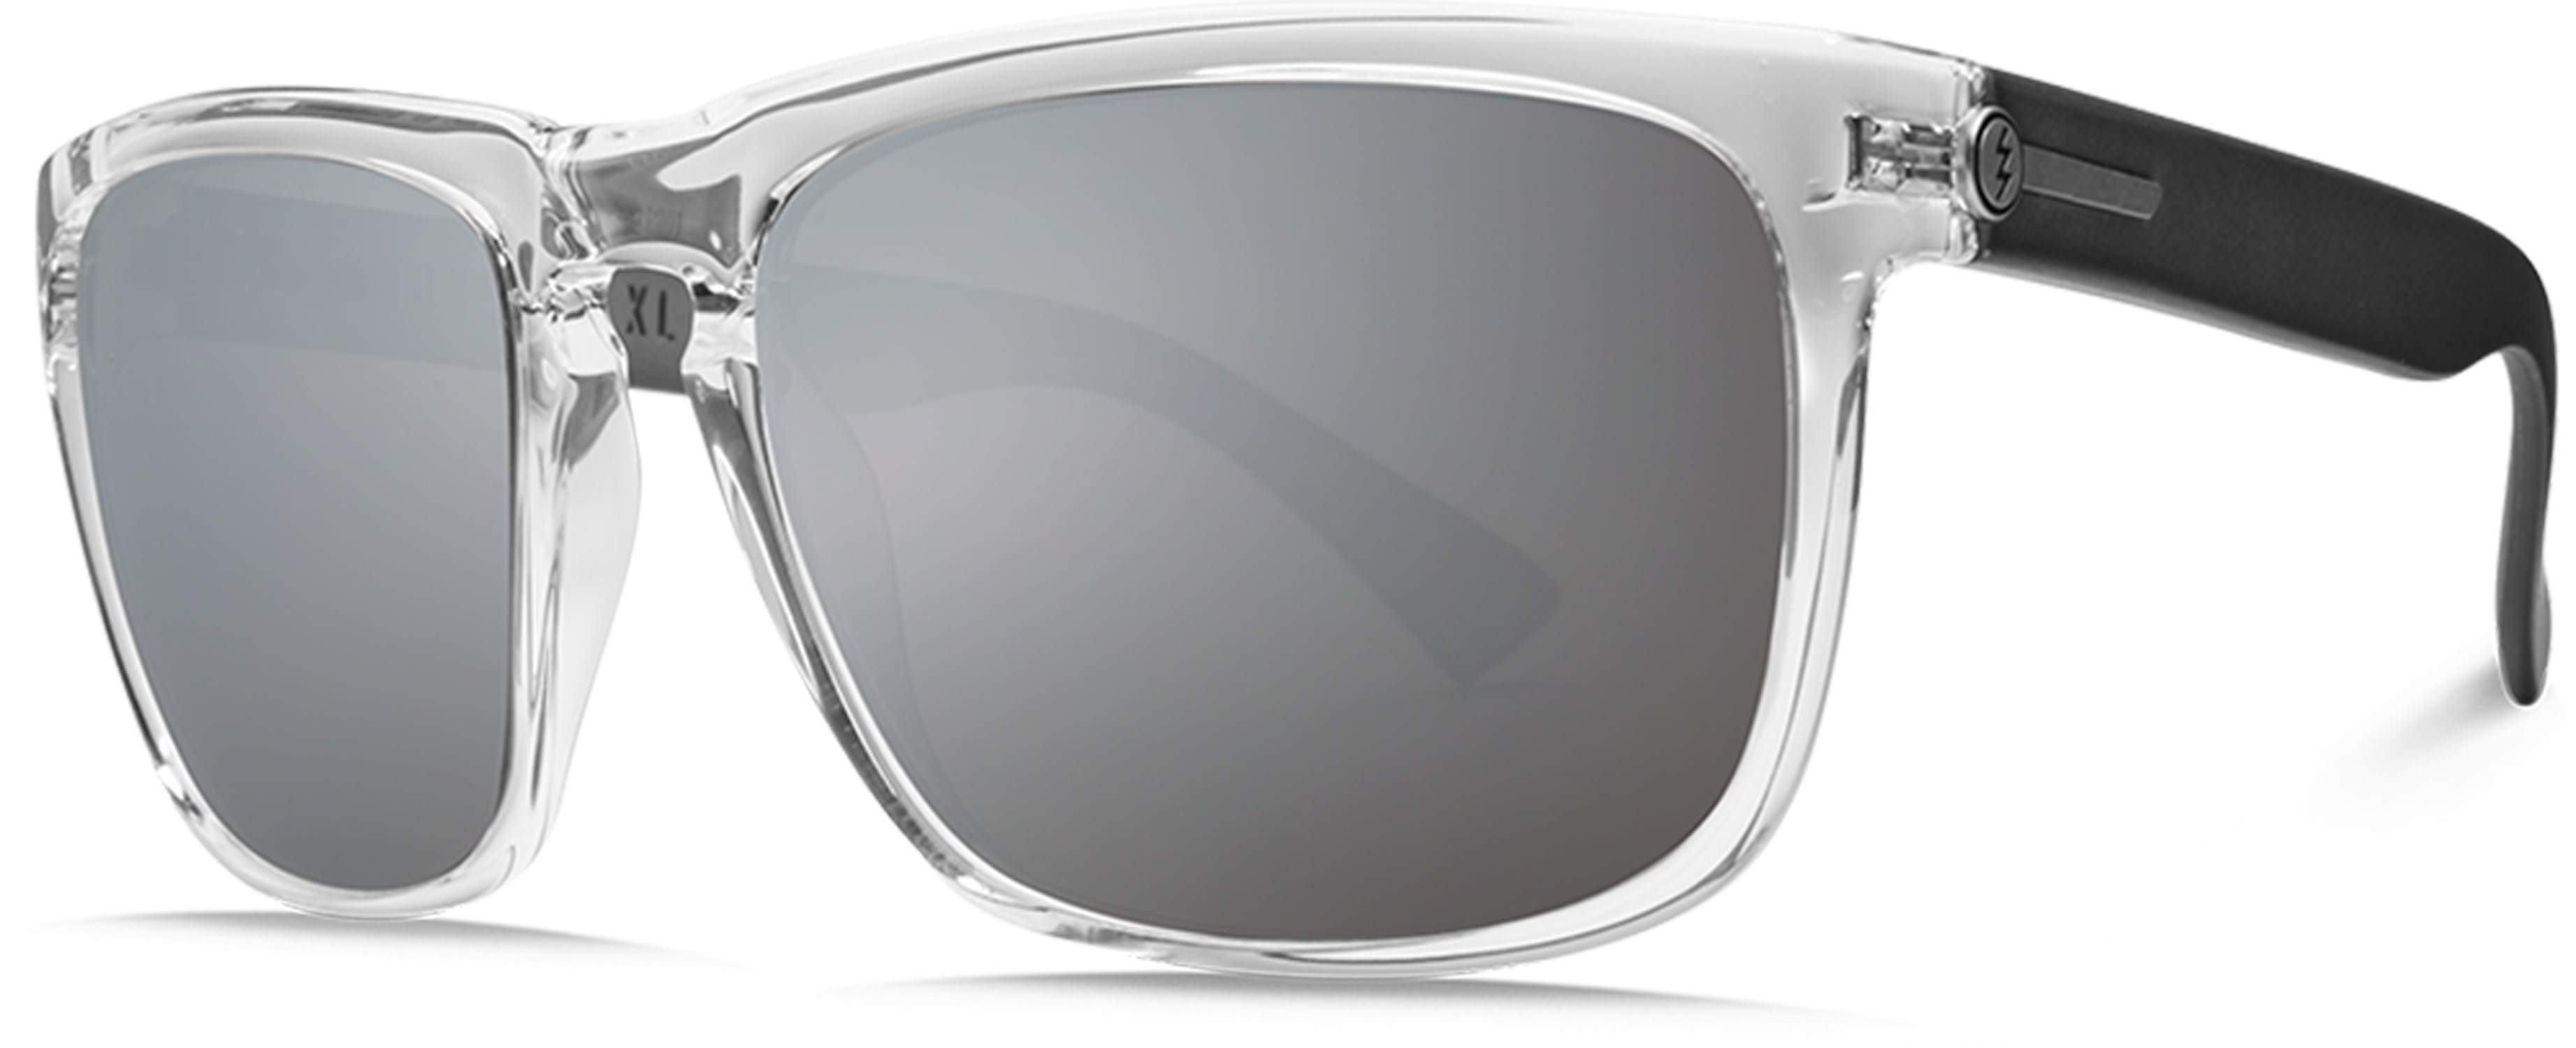 5d64df4cde Electric Knoxville XL Sunglasses - thumbnail 1